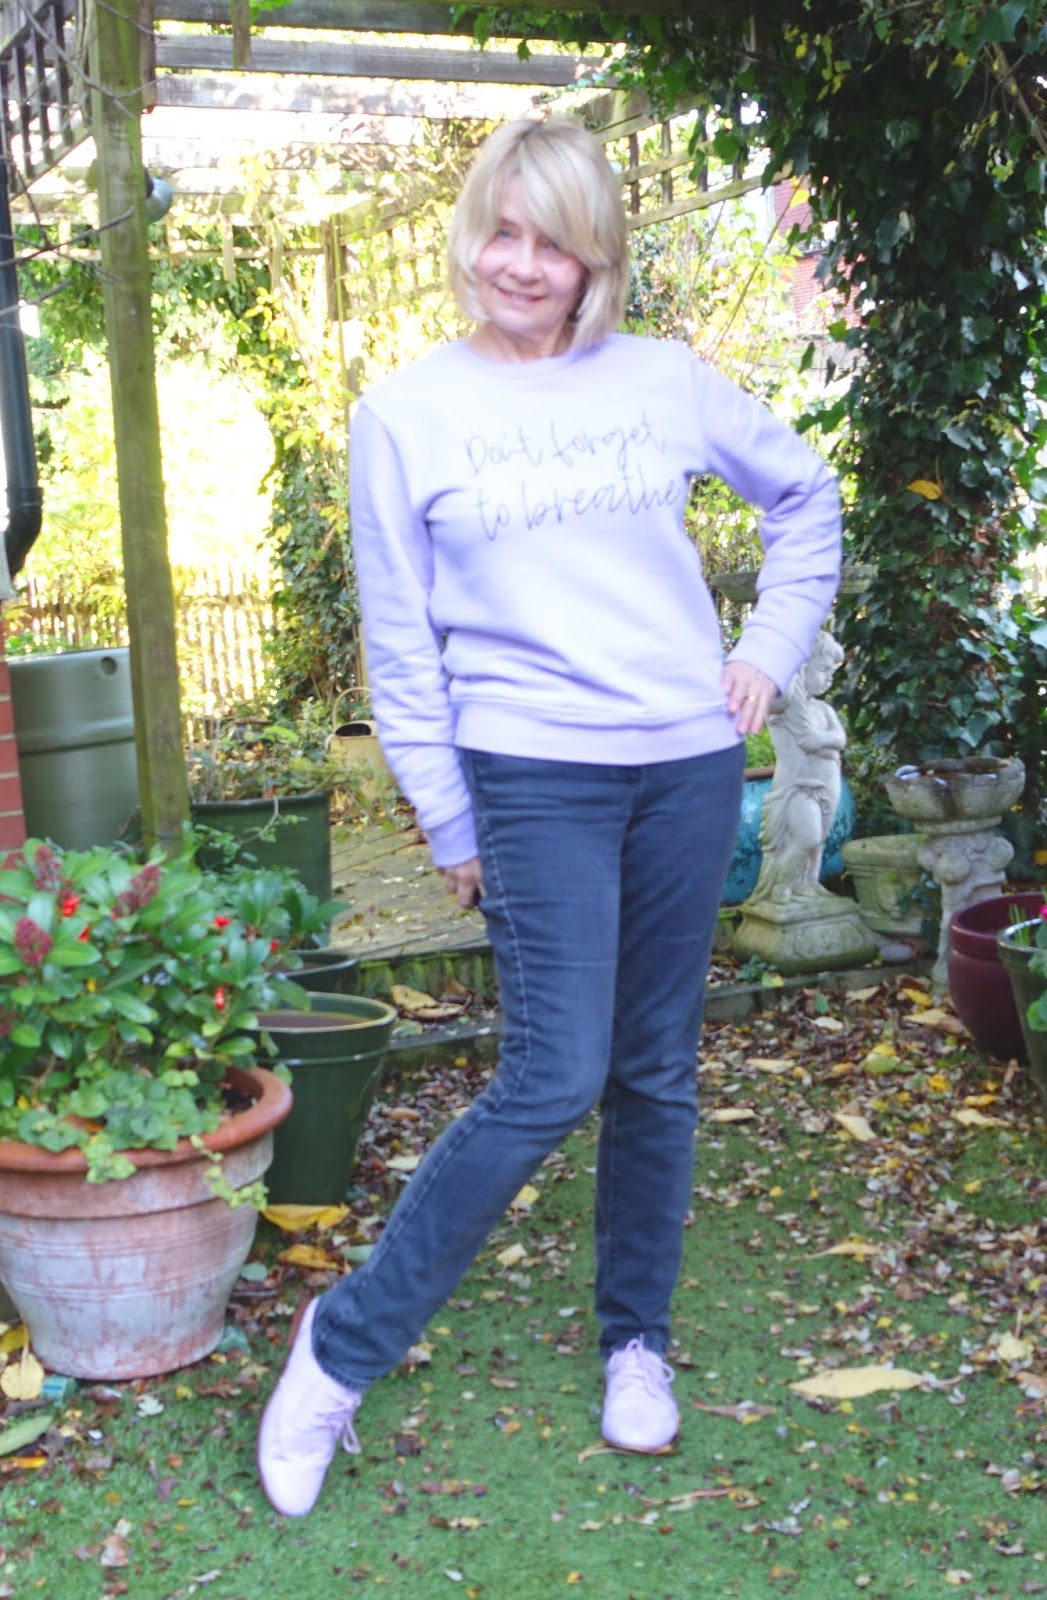 Lilac yoga sweatshirt and jeans worn by style blogger Gail Hanlon from Is This Mutton?